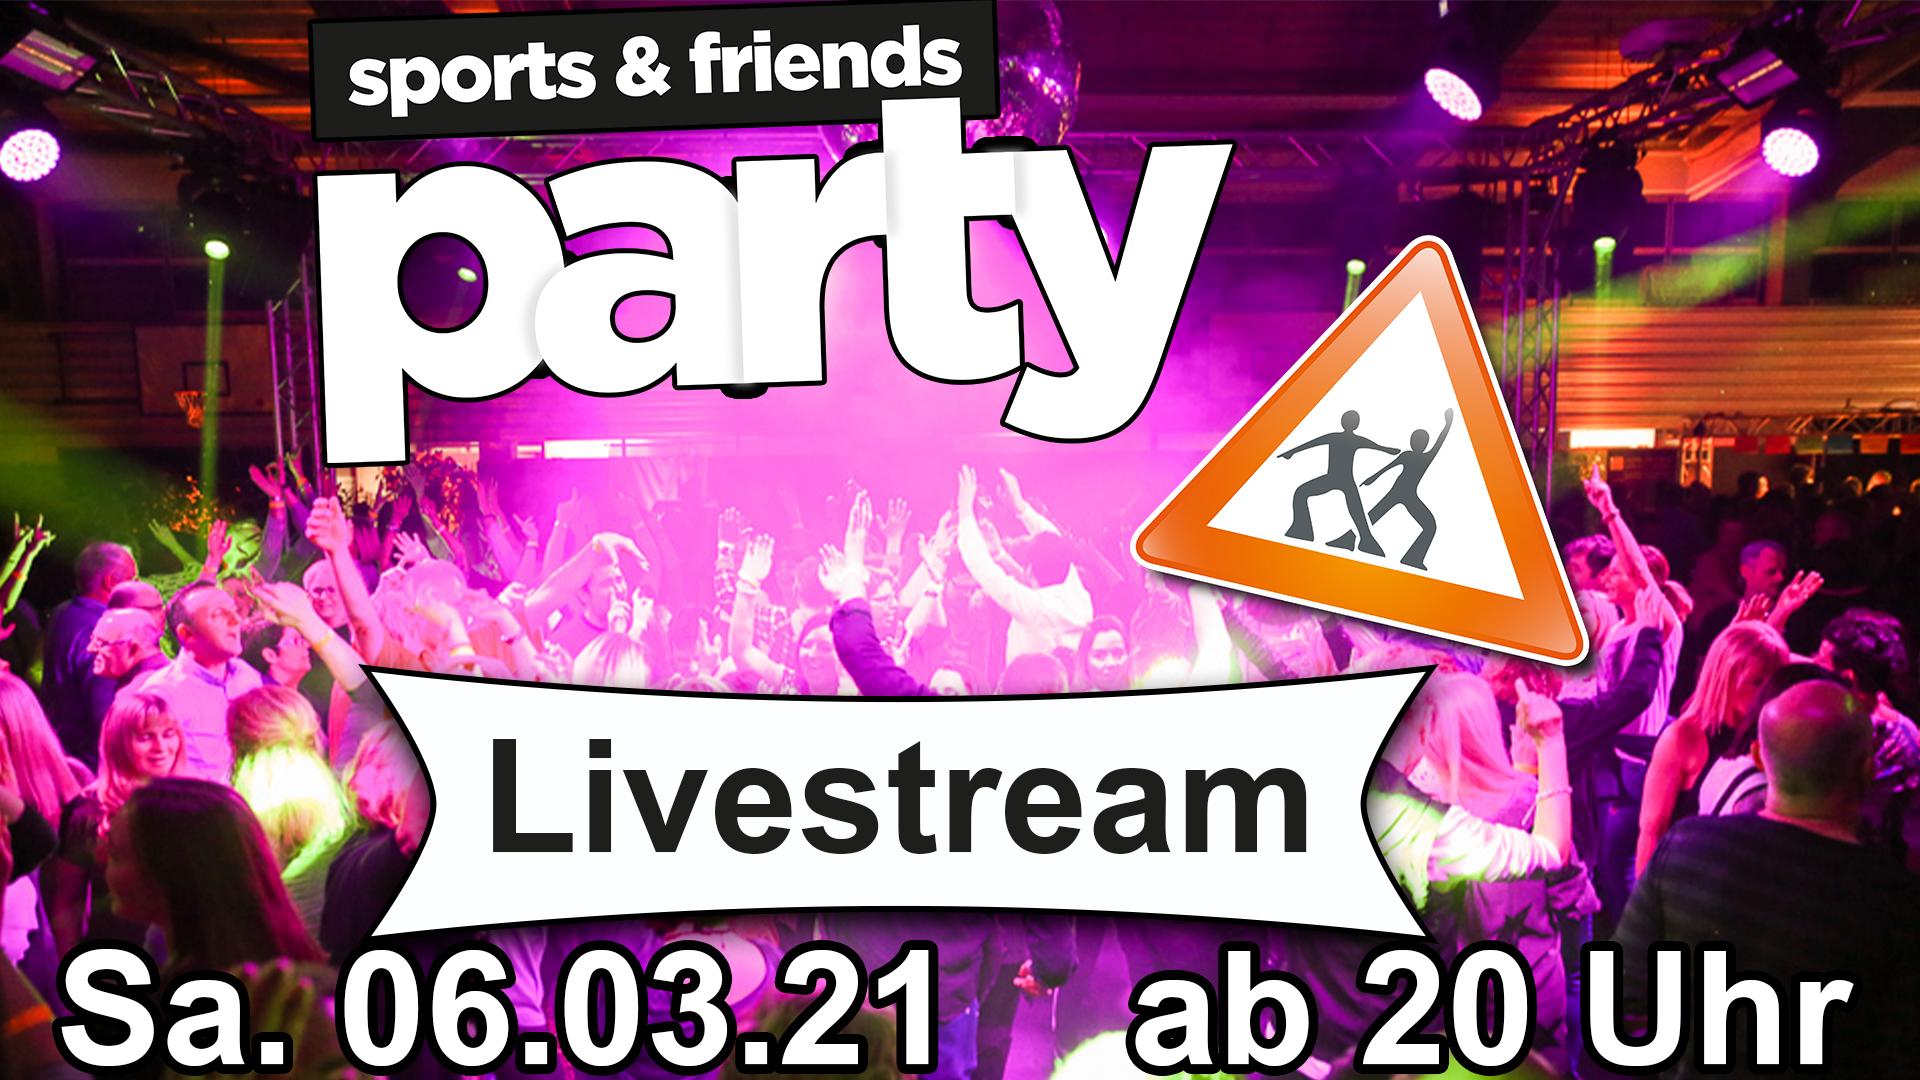 sporta and friends party logo